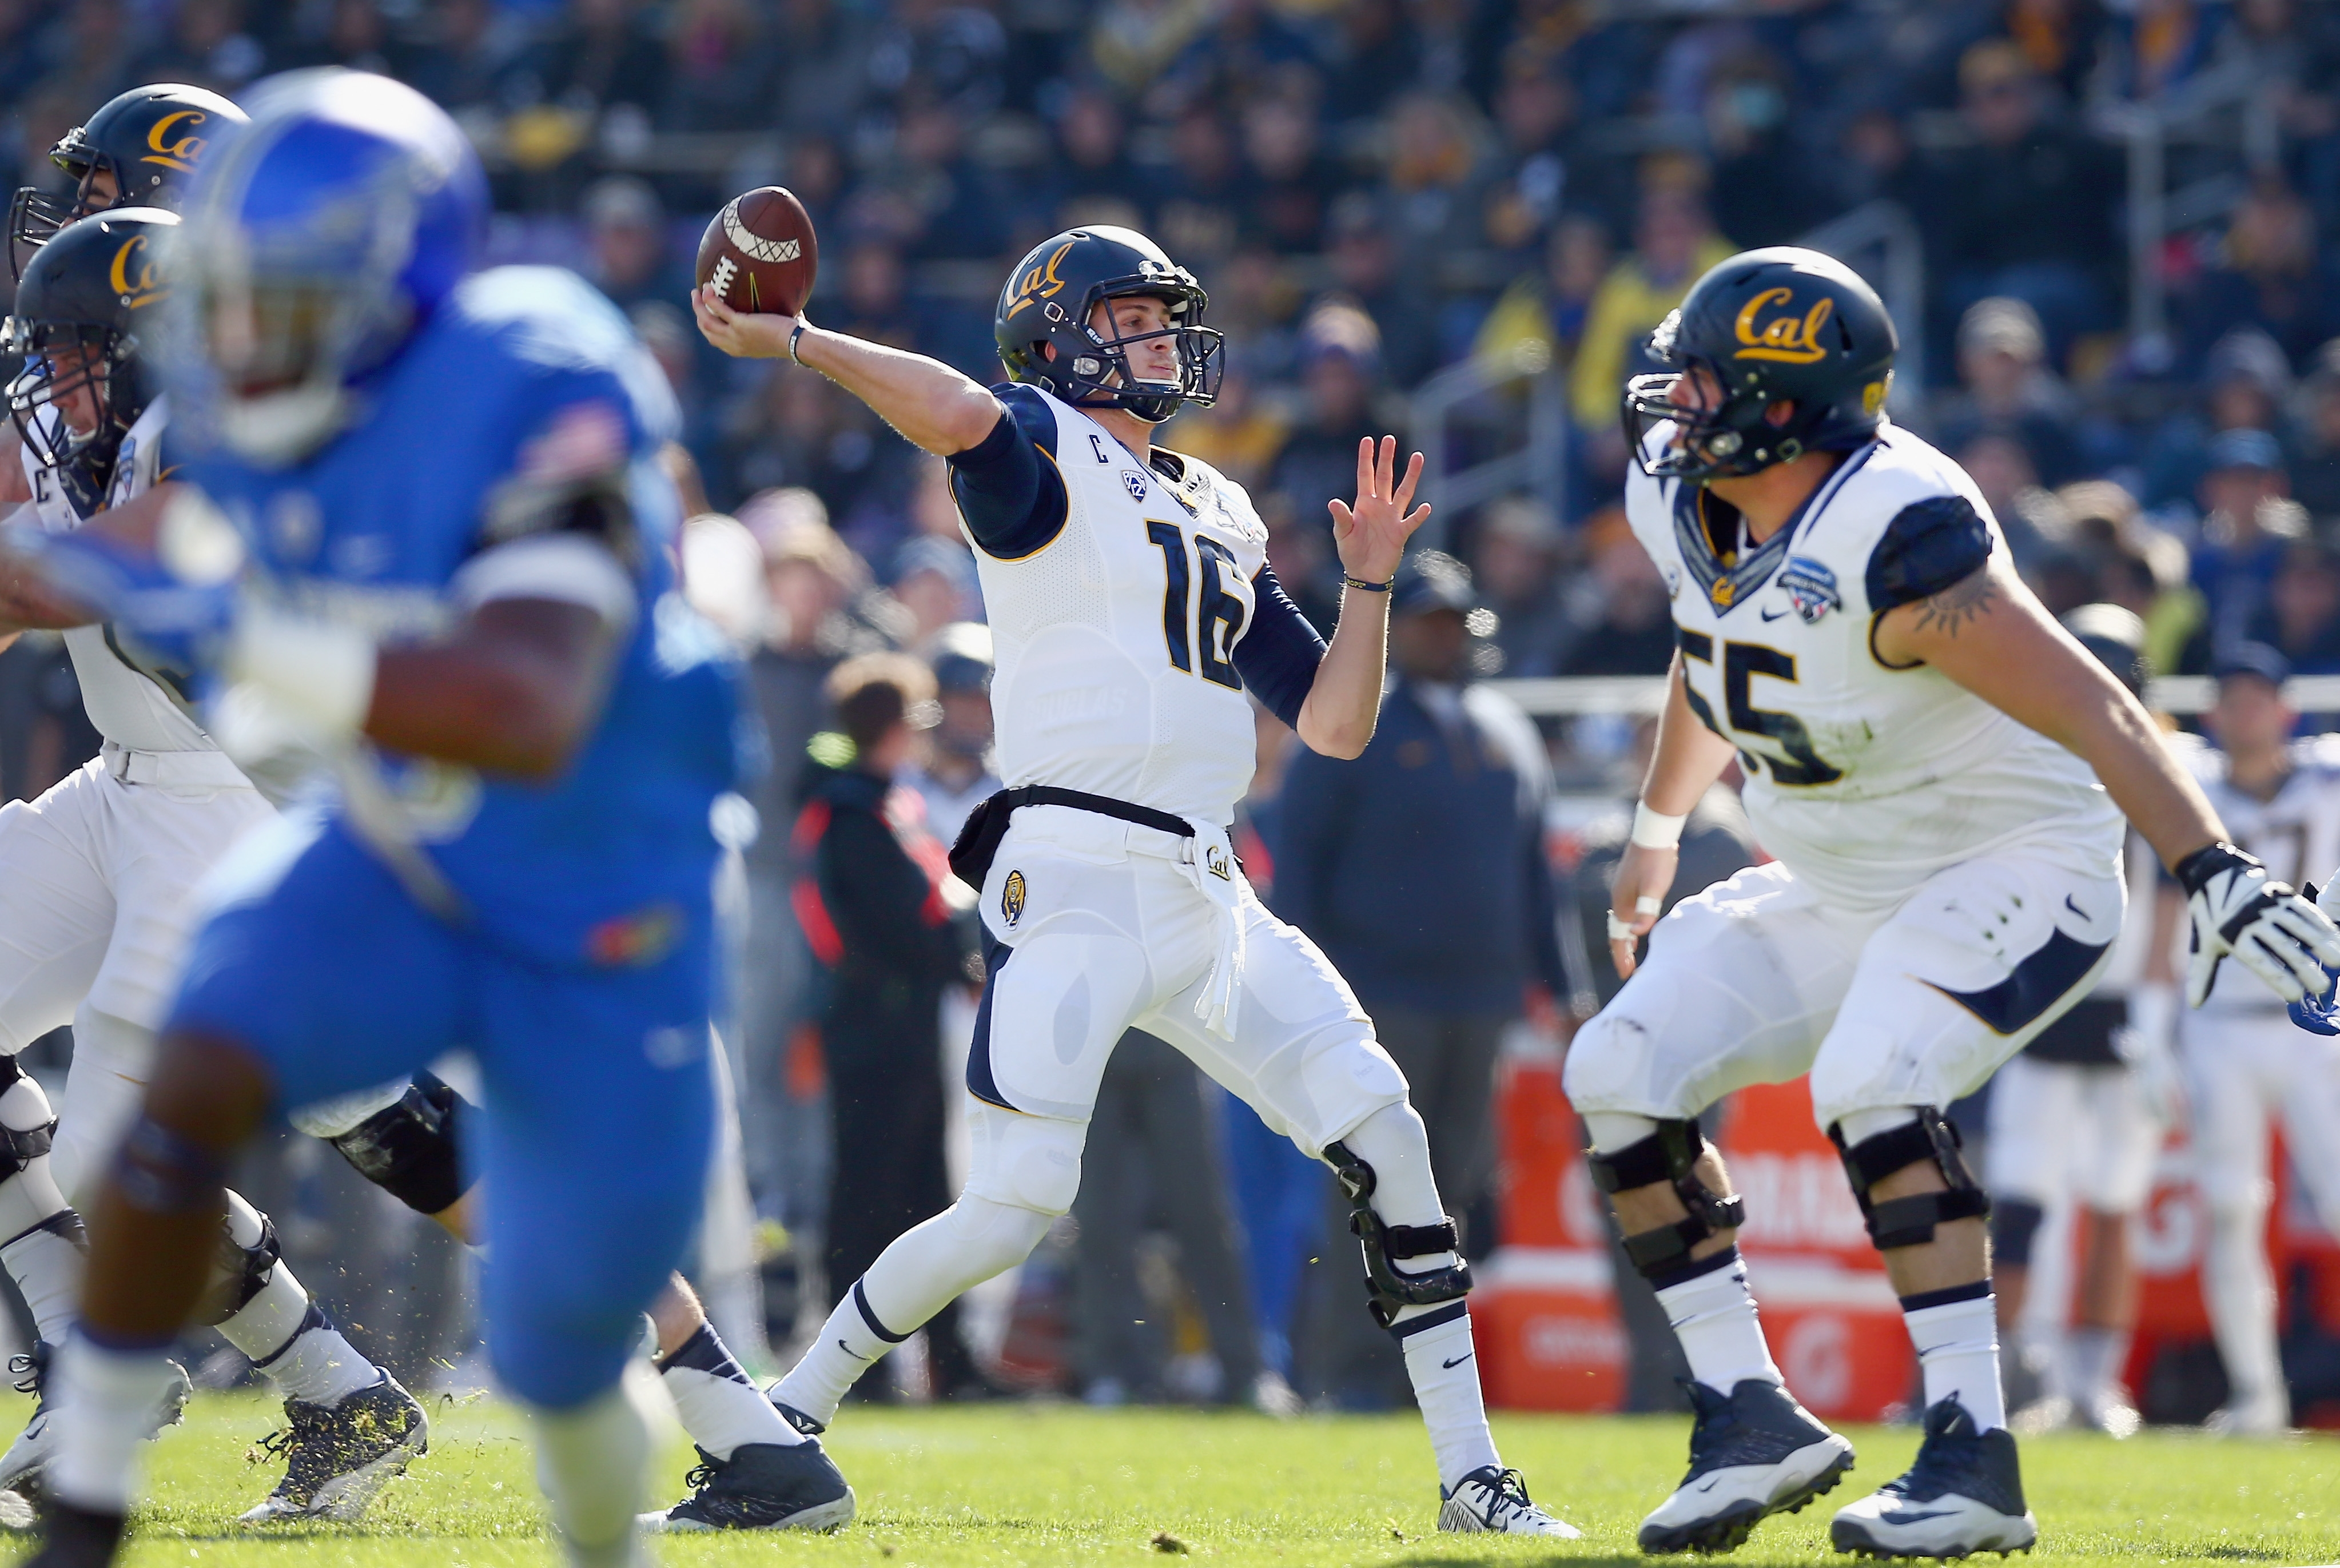 It's easy to see a scenario where the Dallas Cowboys trade up and take Cal quarterback Jared Goff first overall in the NFL Draft.(Getty Images)